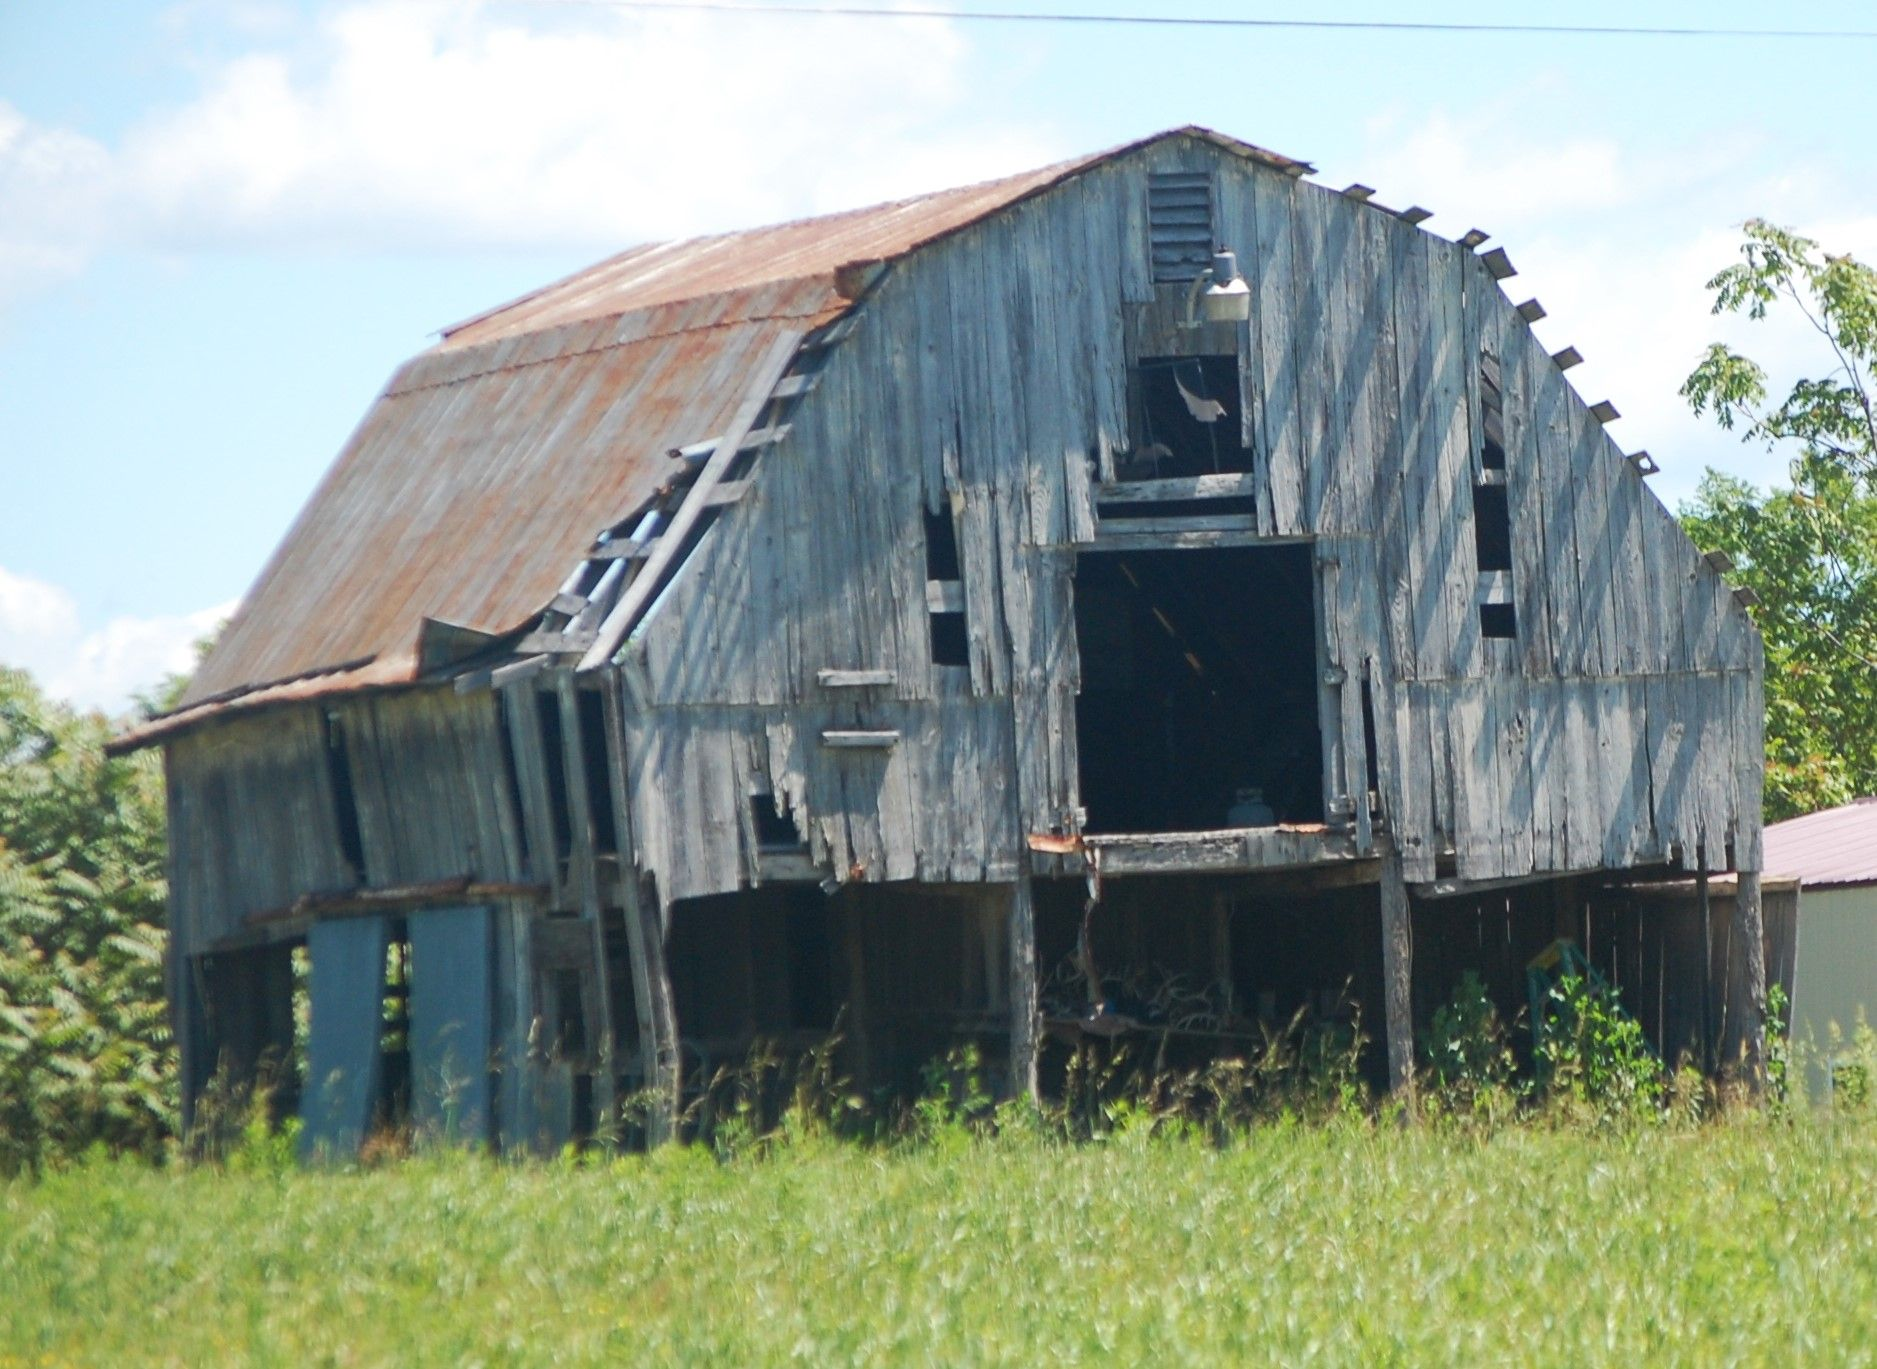 Barn in Meade County, KY.